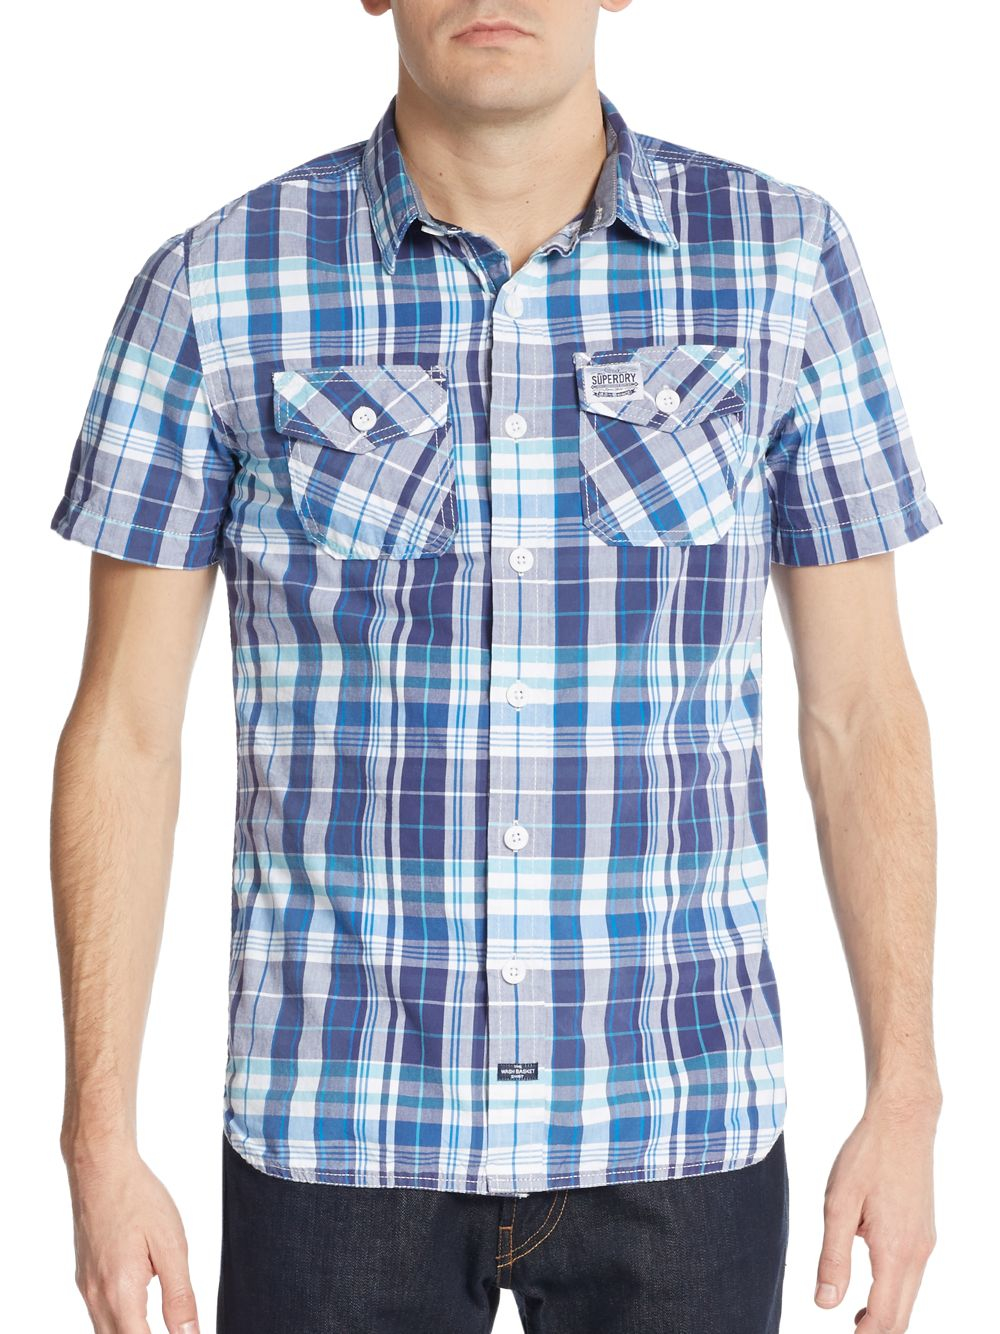 Lyst Superdry Slim Fit Cotton Button Down Shirt In Blue